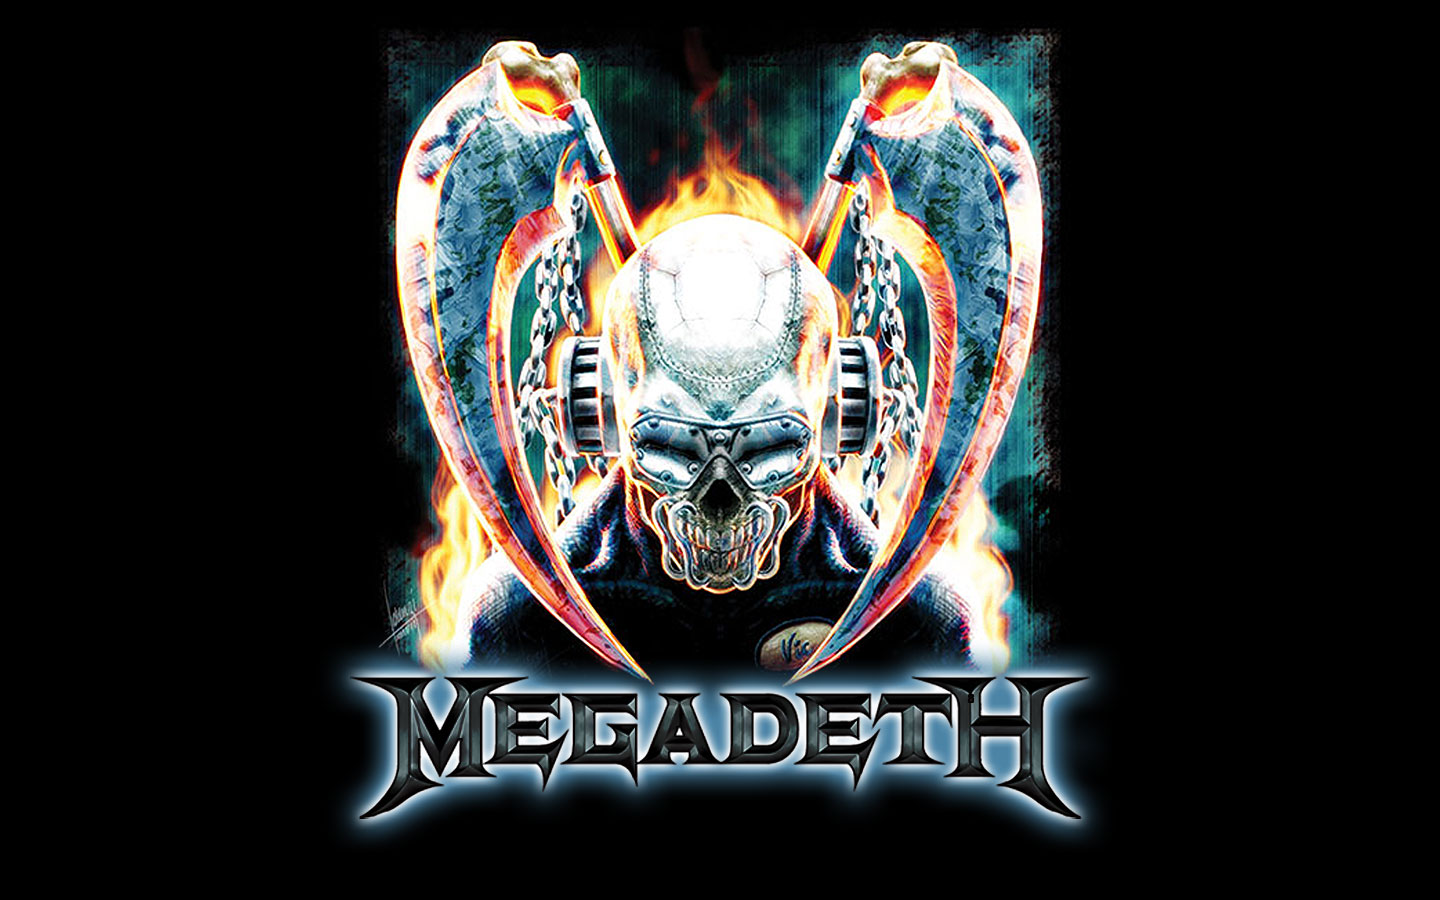 Megadeth Images Megadeth Hd Wallpaper And Background Photos 23926902